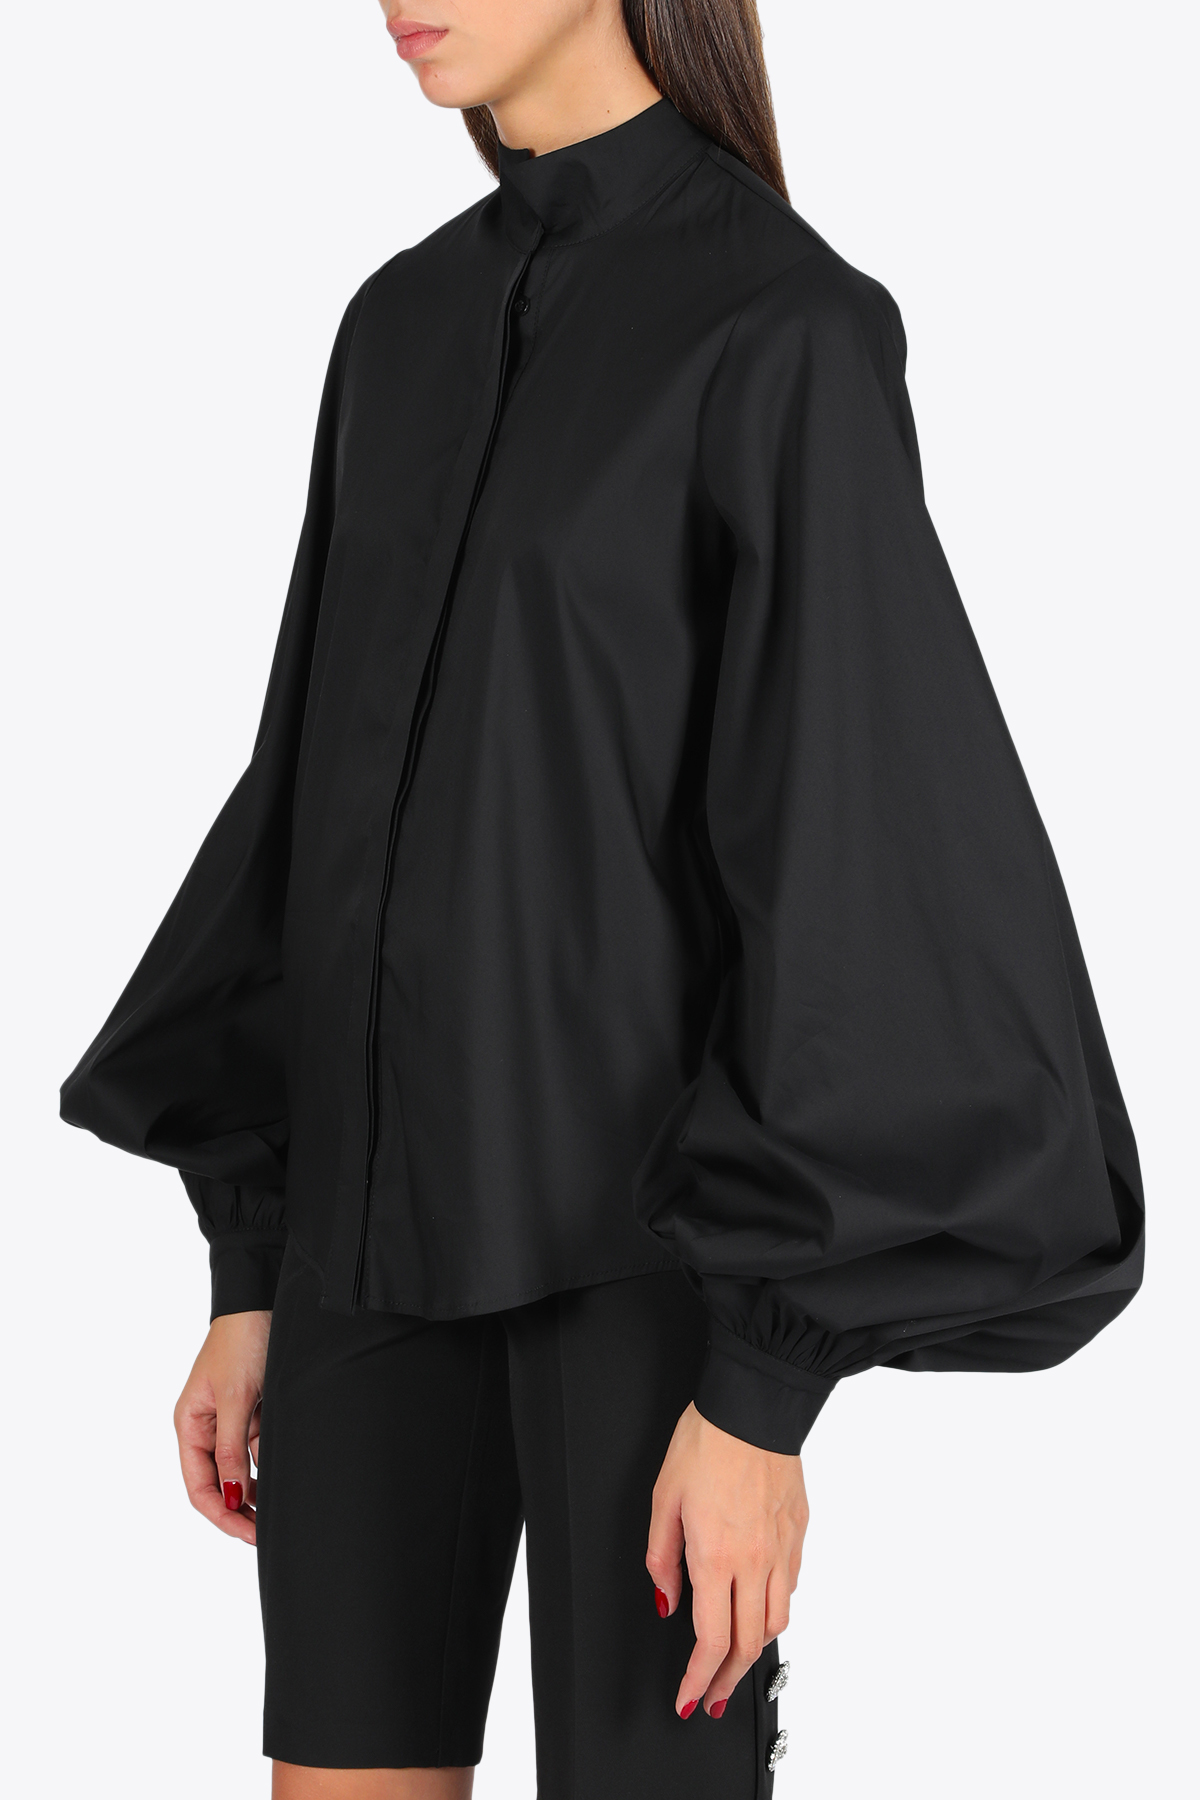 Puff sleeves shirt ACTUALEE | 6 | 5160 CA489BLACK